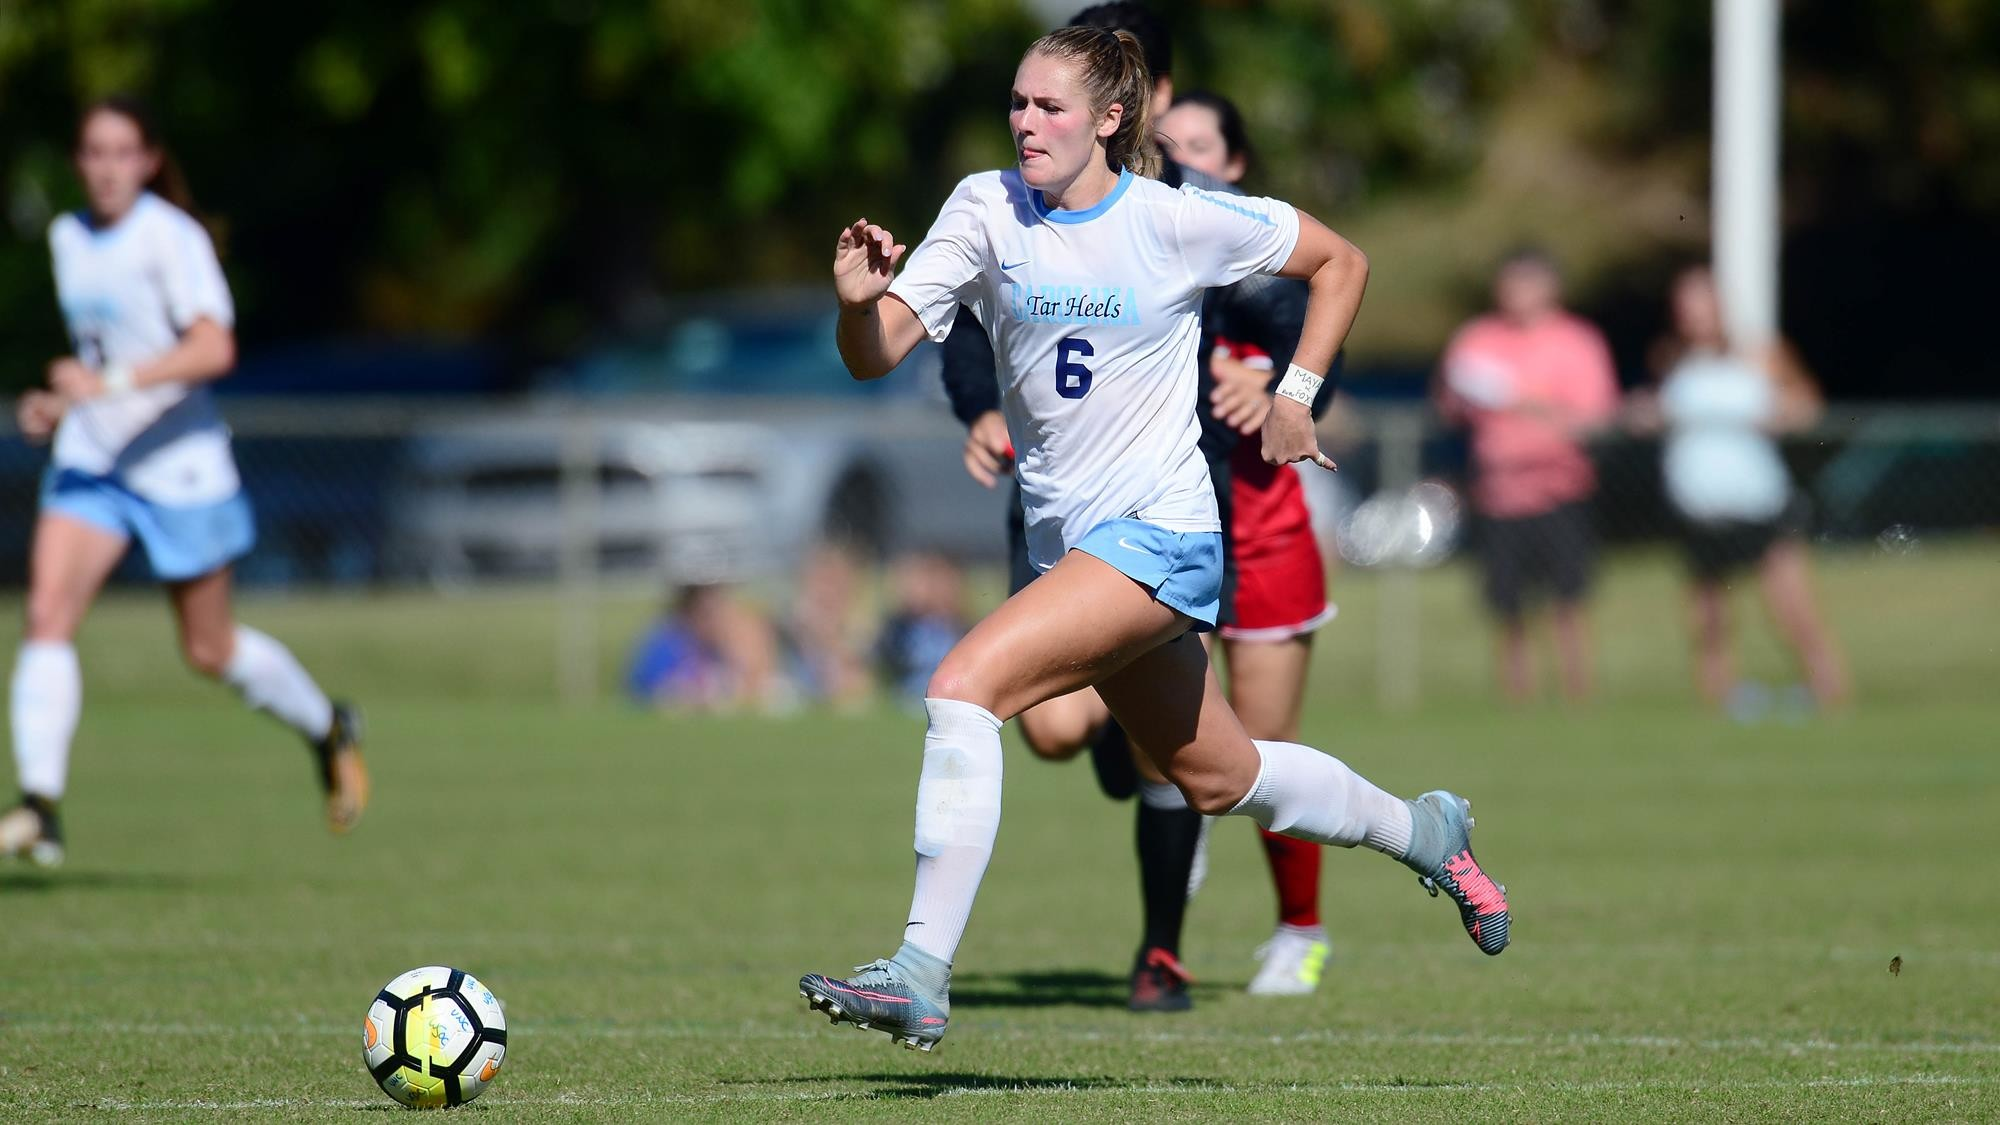 2000x1125 UNC Alumna Heath Named US Soccer Female Player of the Year - UNC Tar Heels  Athletics